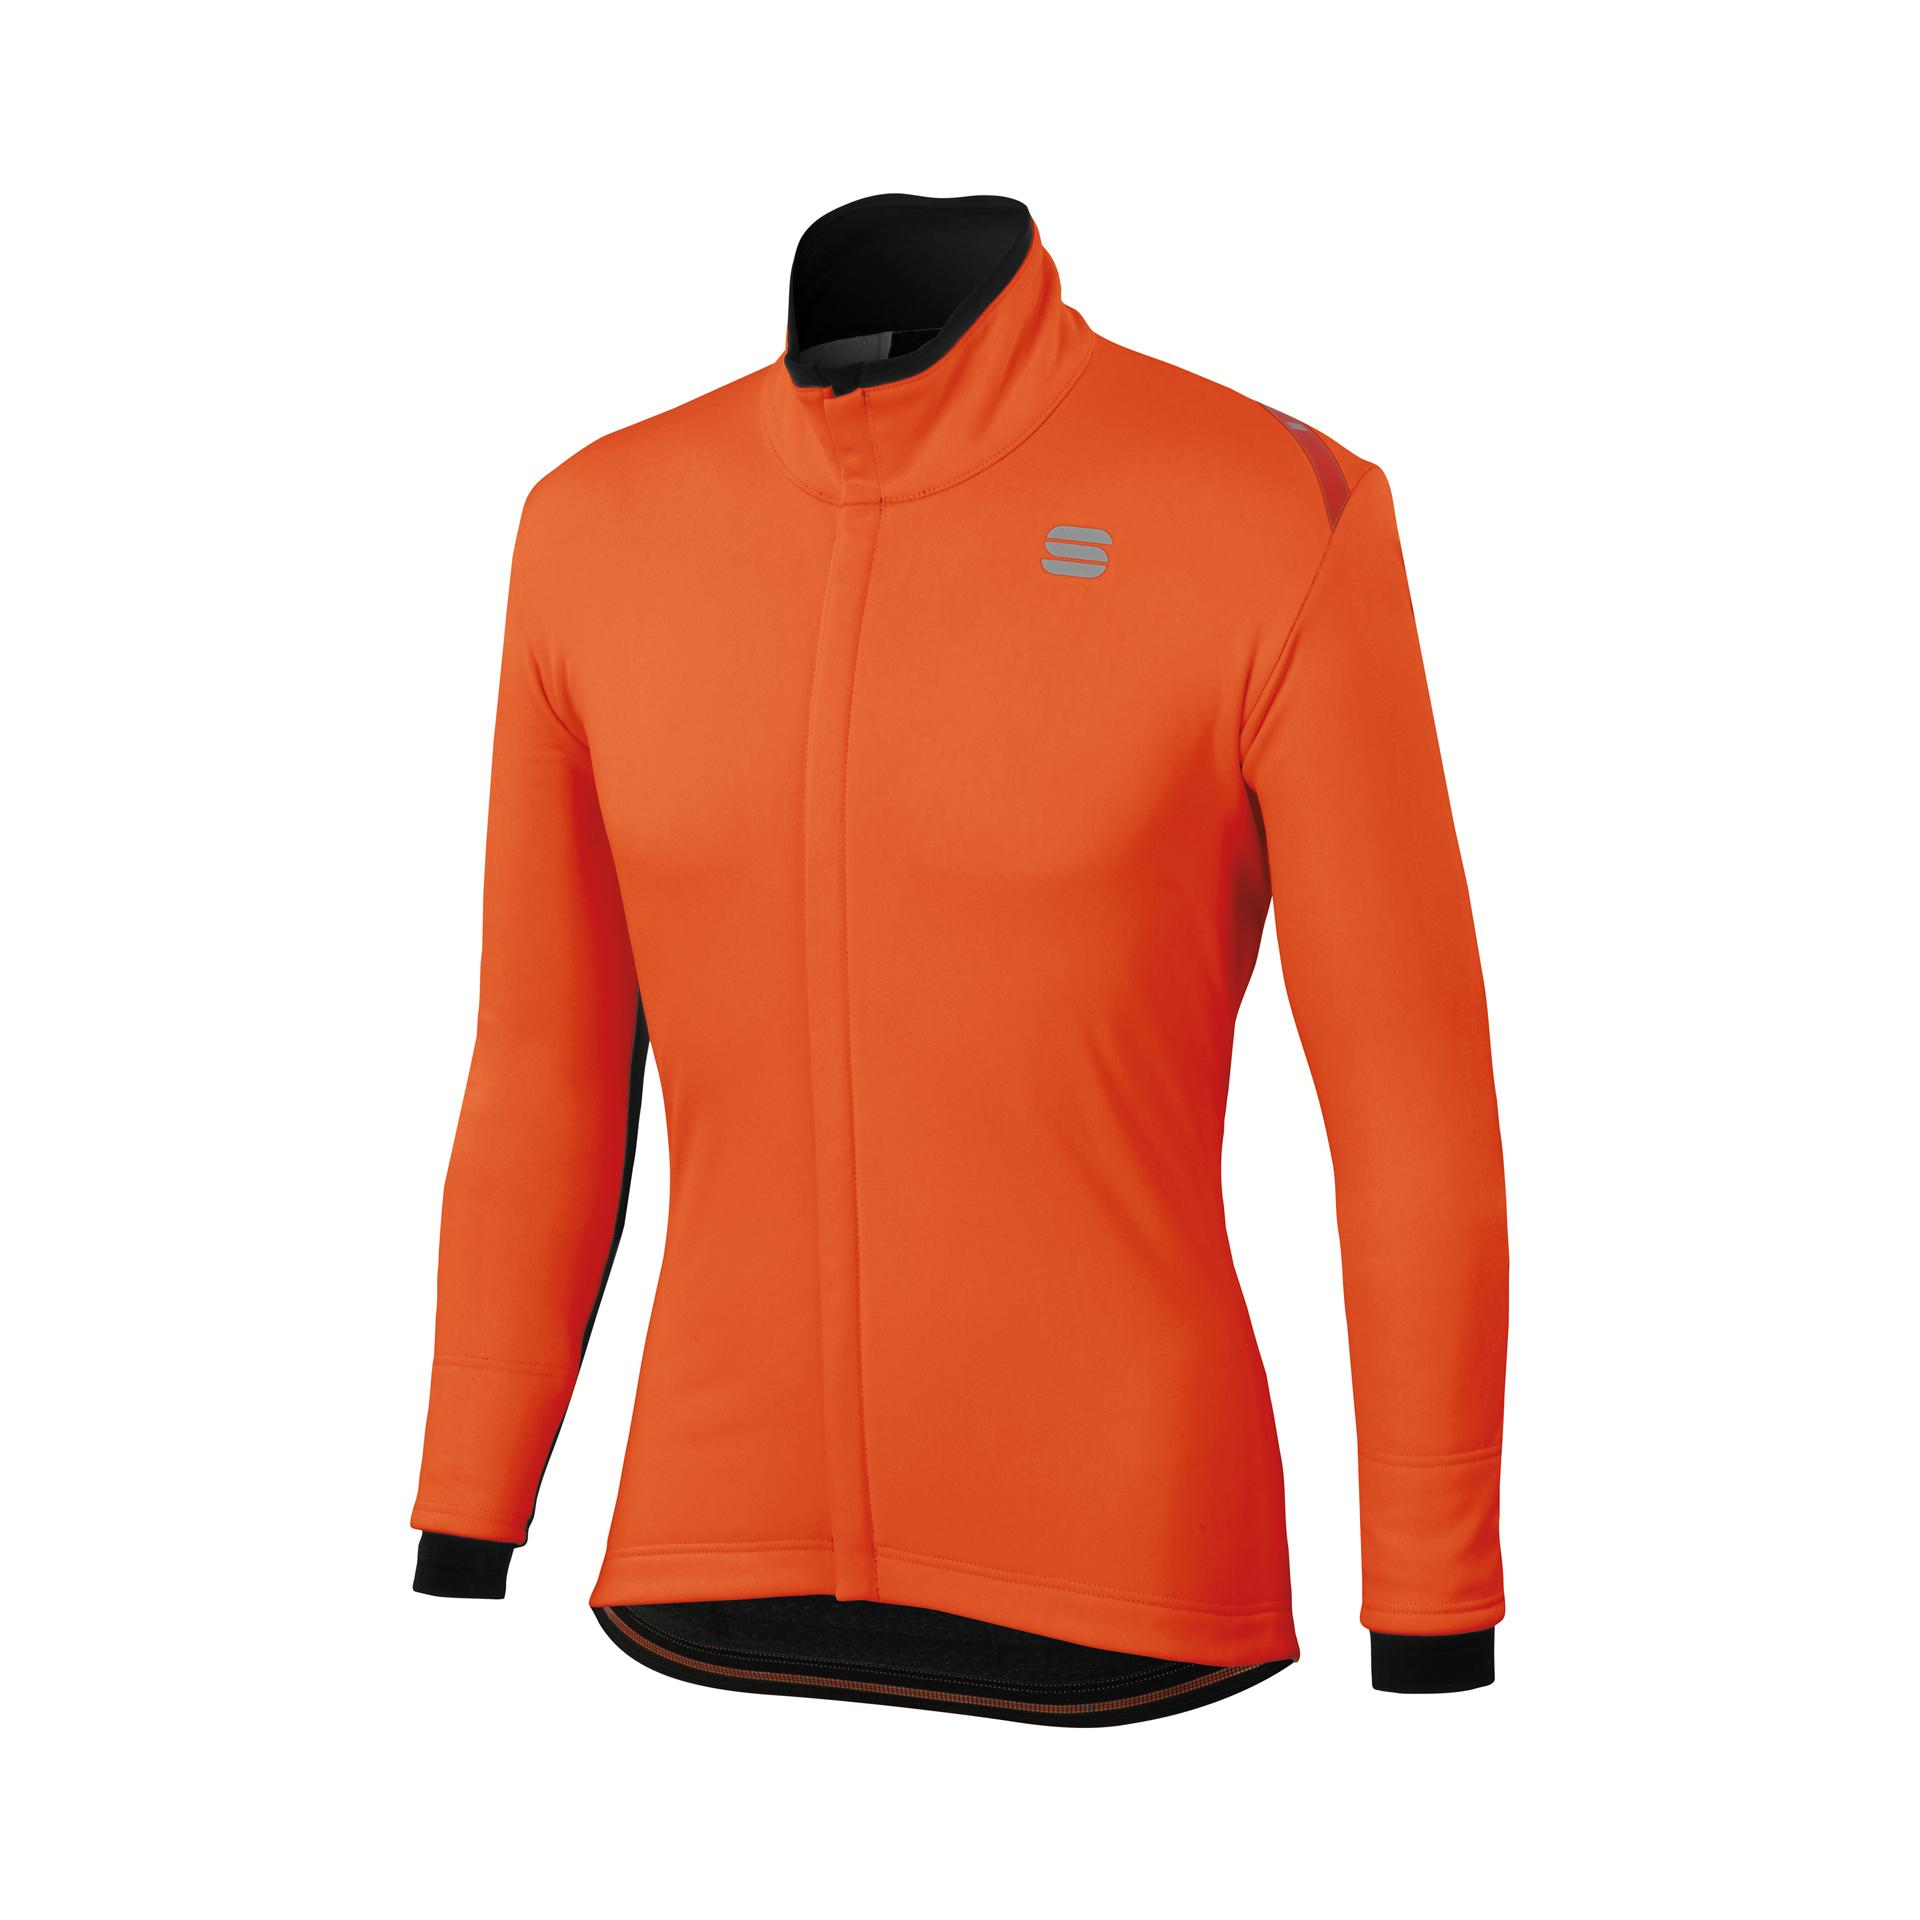 Sportful Fietsjack waterafstotend Heren Oranje / Fiandre Thermo Cabrio Jacket-Orange Sdr